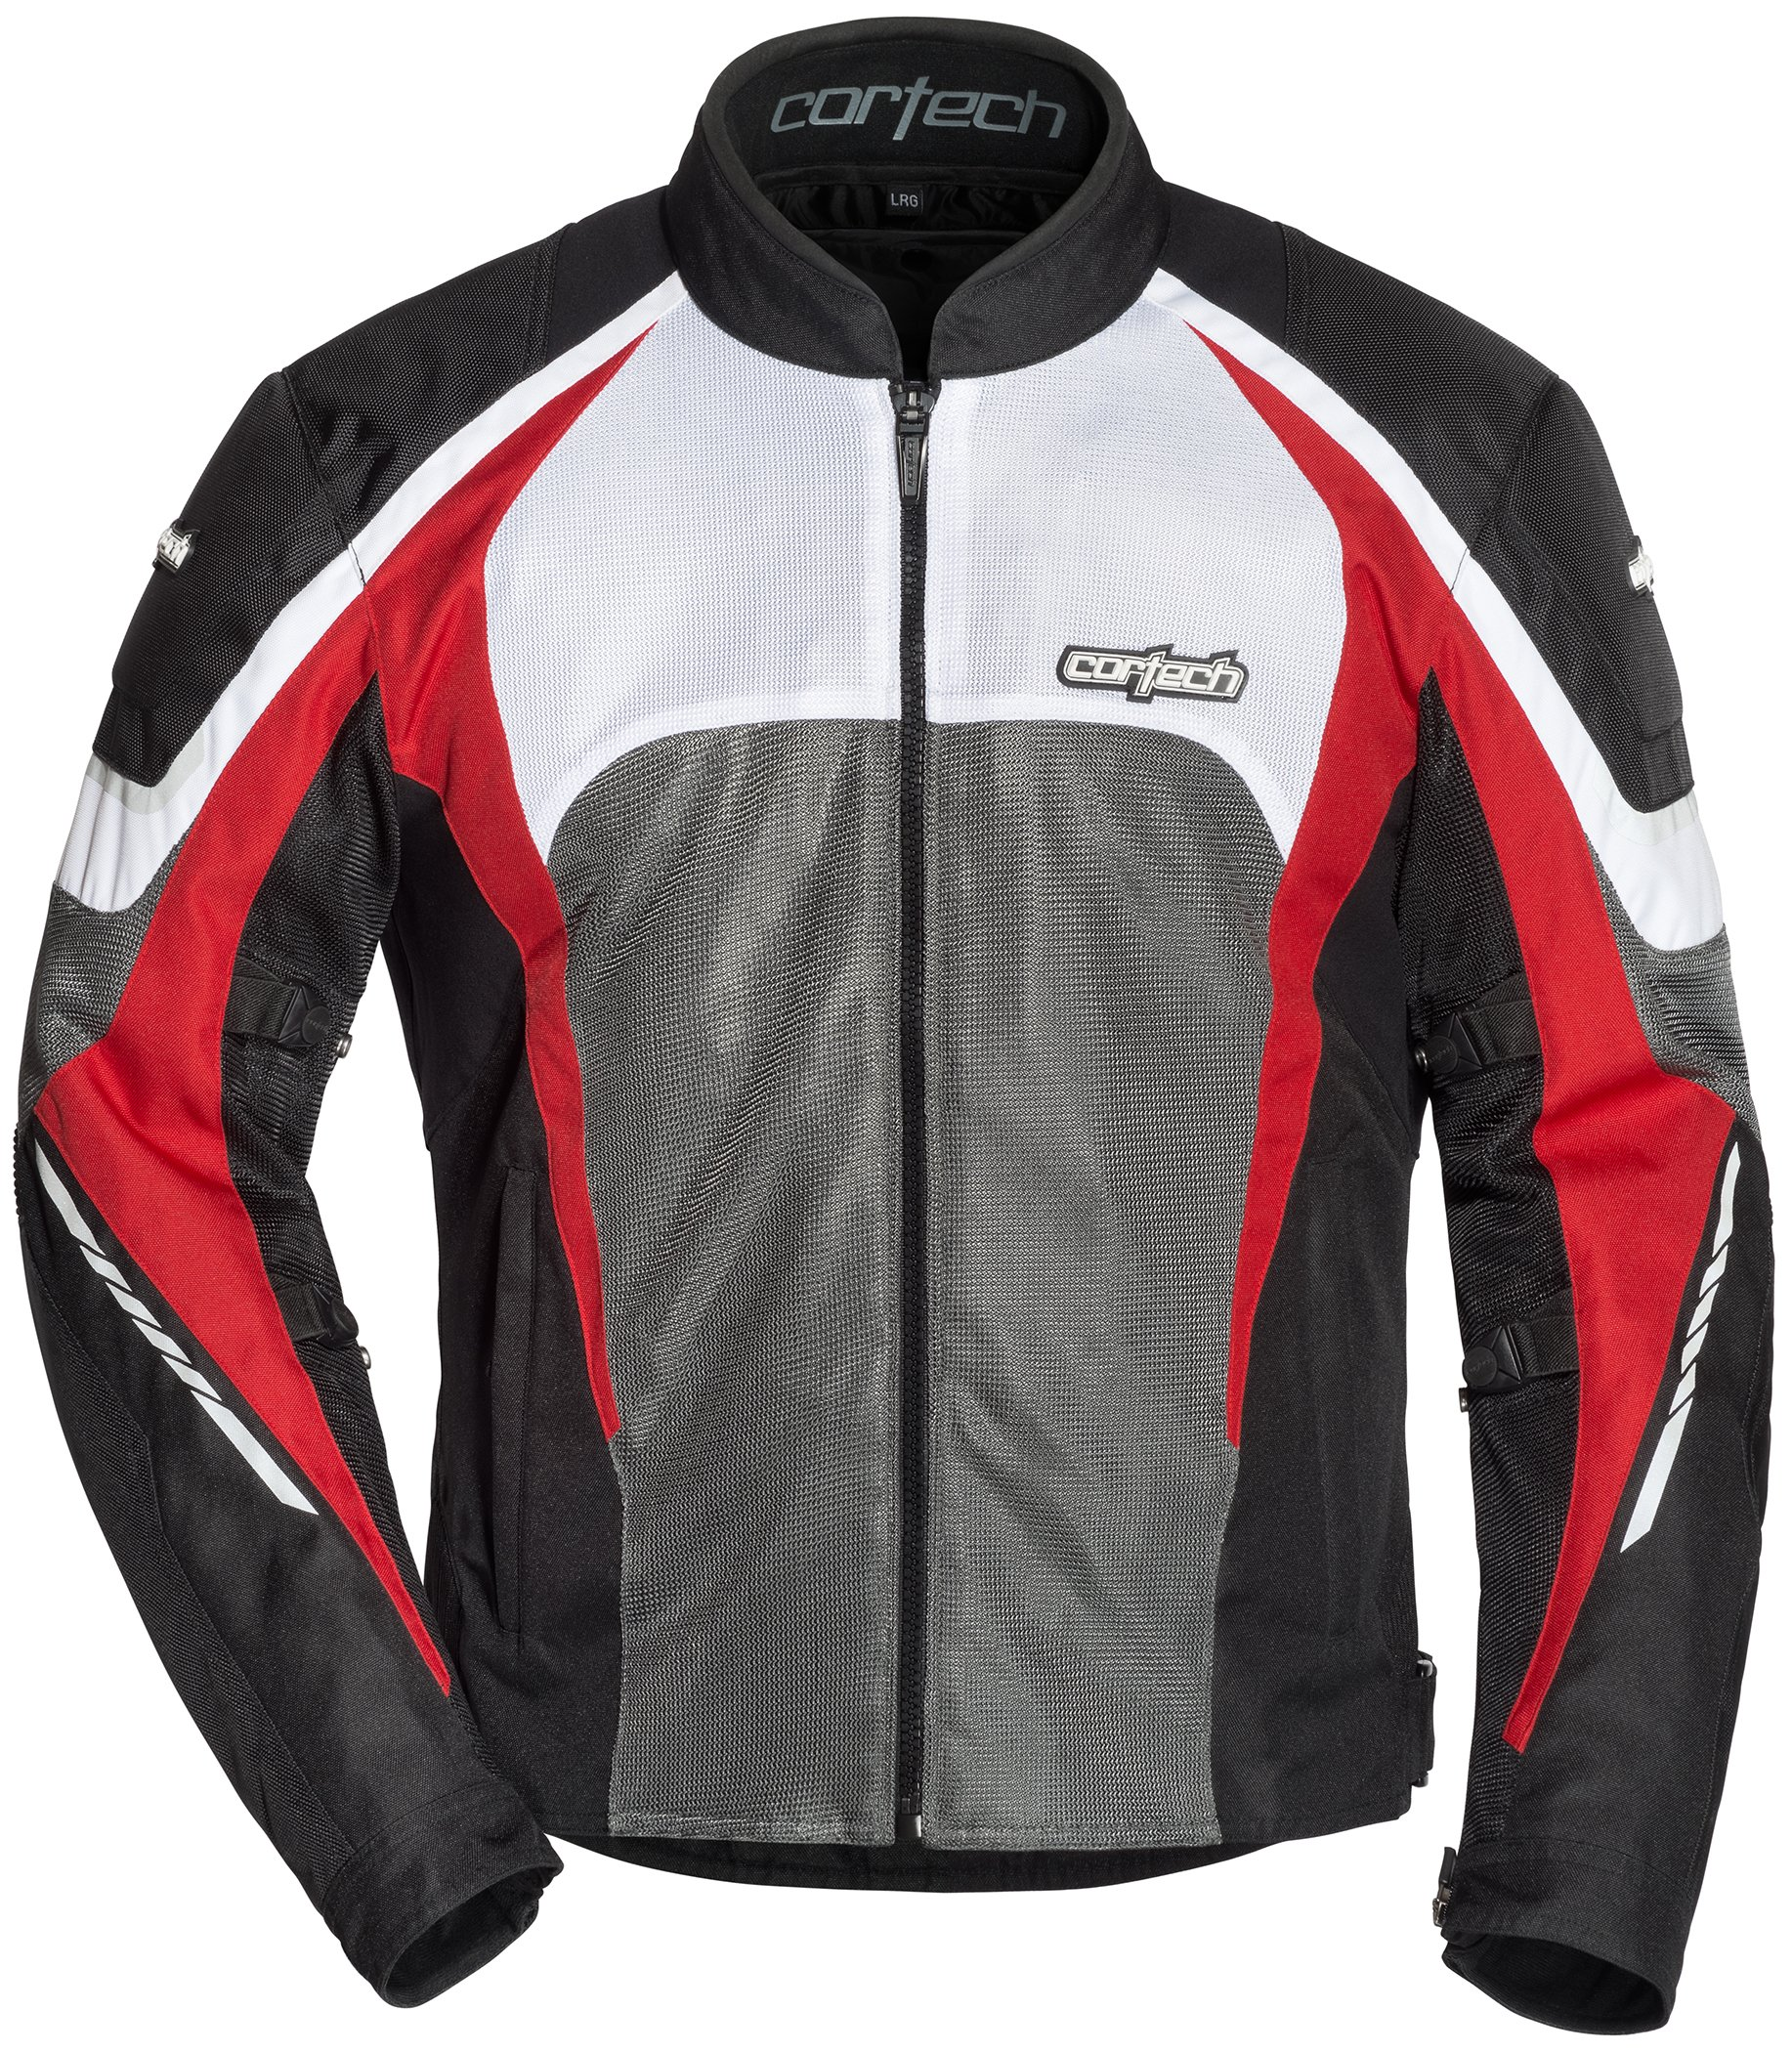 Cortech Men's GX-Sport Air 5.0 Jacket (Black/Red, X-Large), 1 Pack